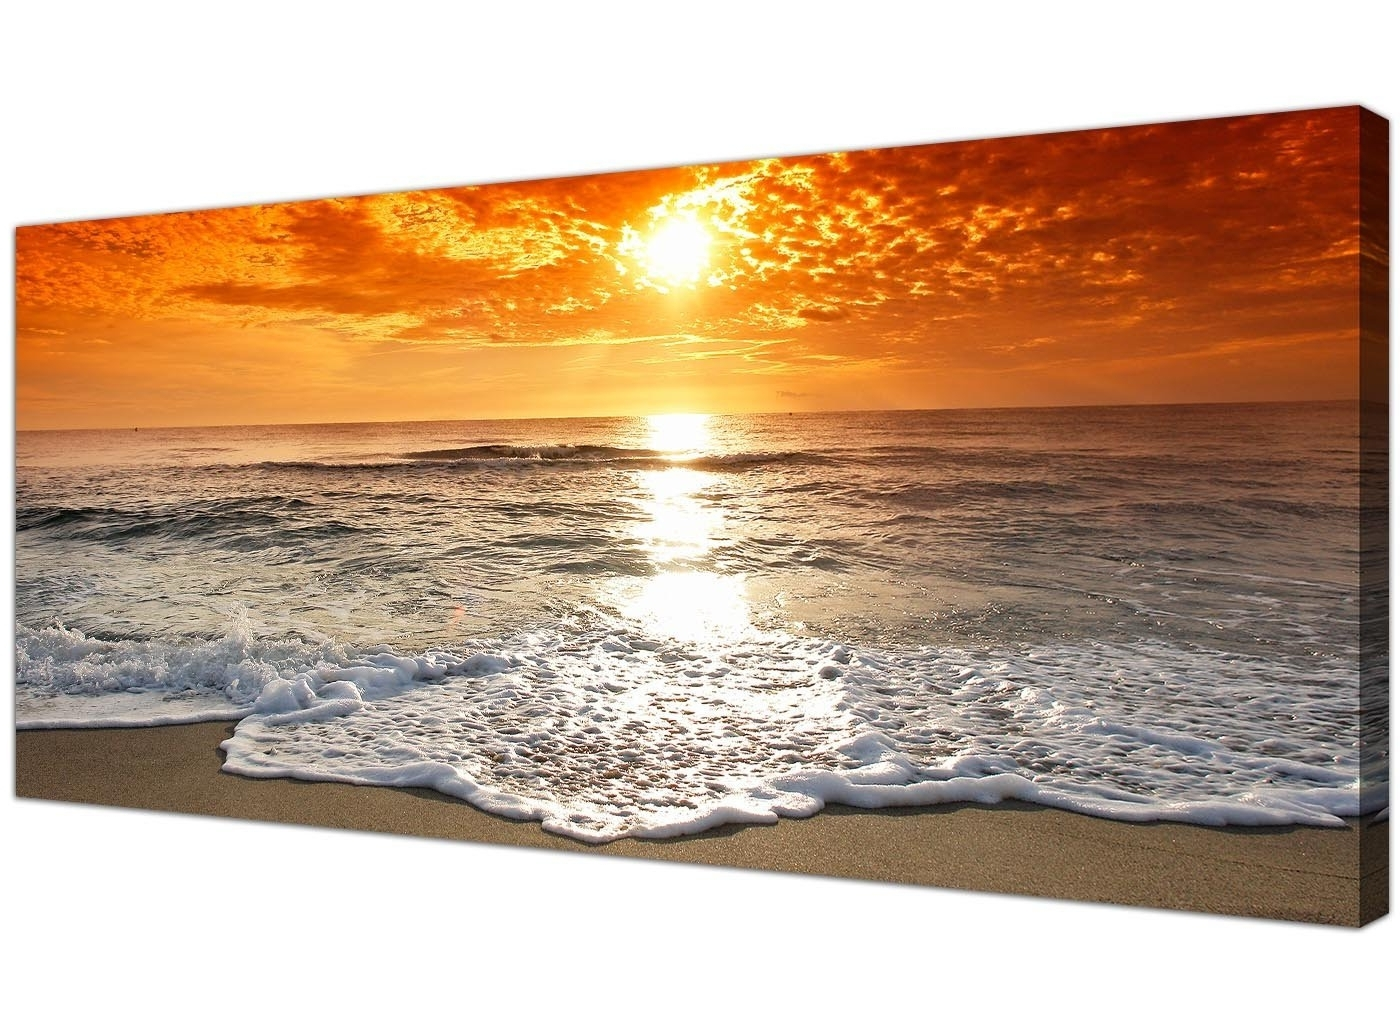 Widely Used Buf Superb Cheap Canvas Wall Art – Wall Decoration Ideas Within Cheap Canvas Wall Art (View 15 of 15)